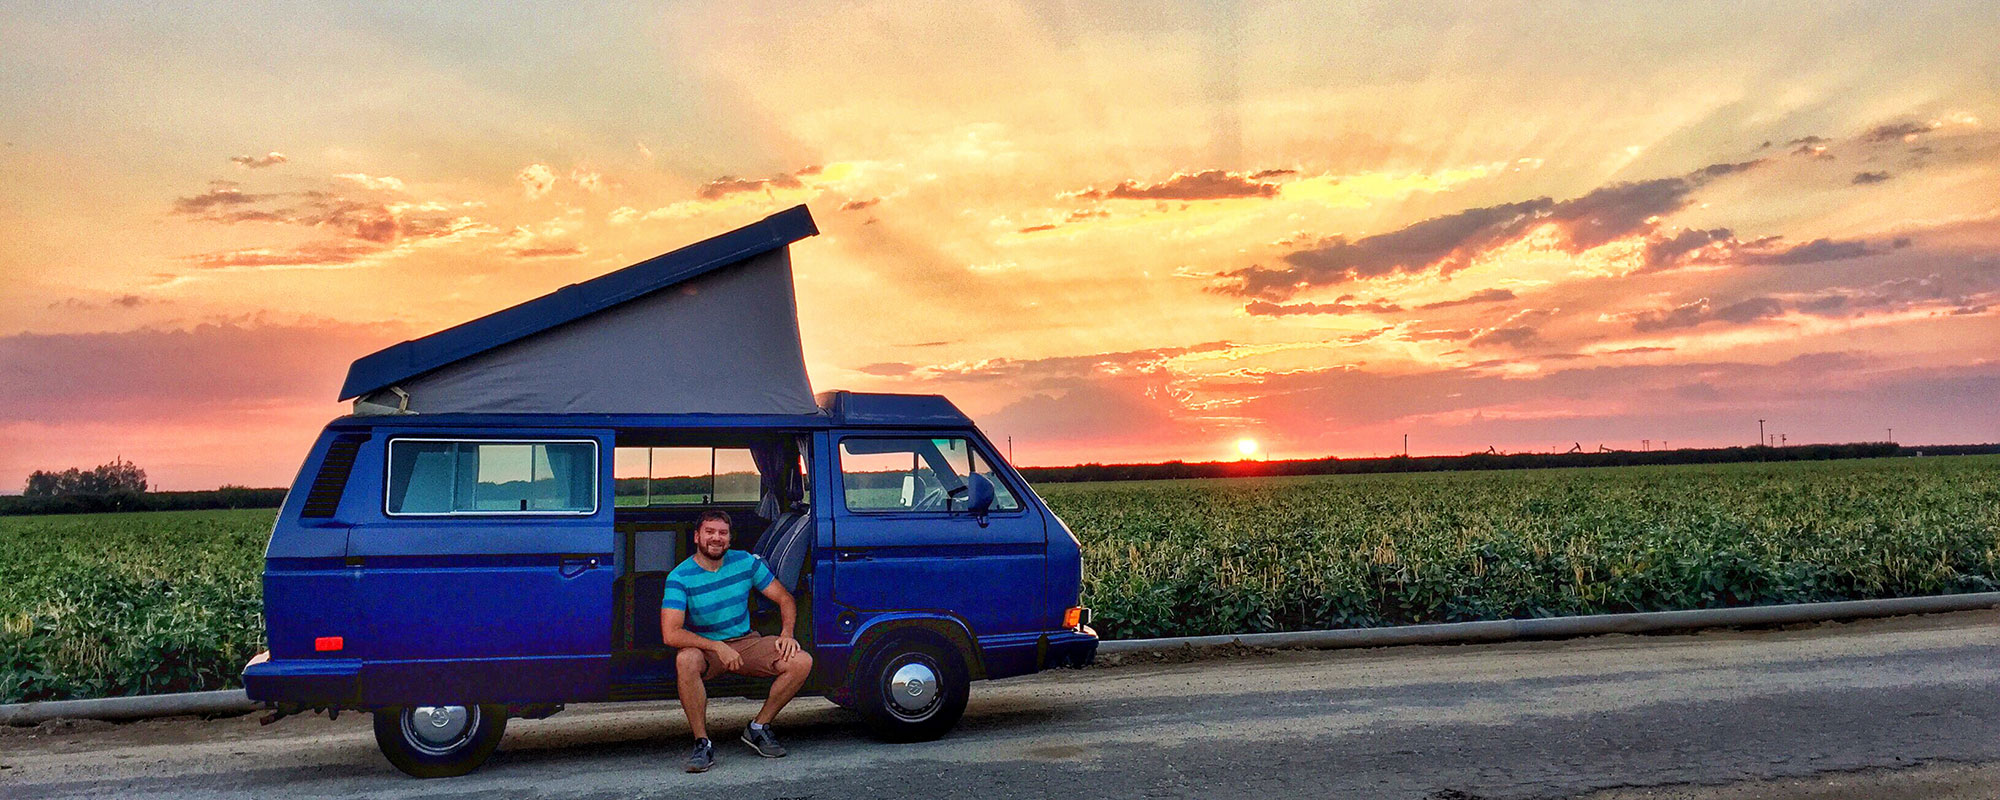 Marty and Me - Traveling the country in my VW Vanagon